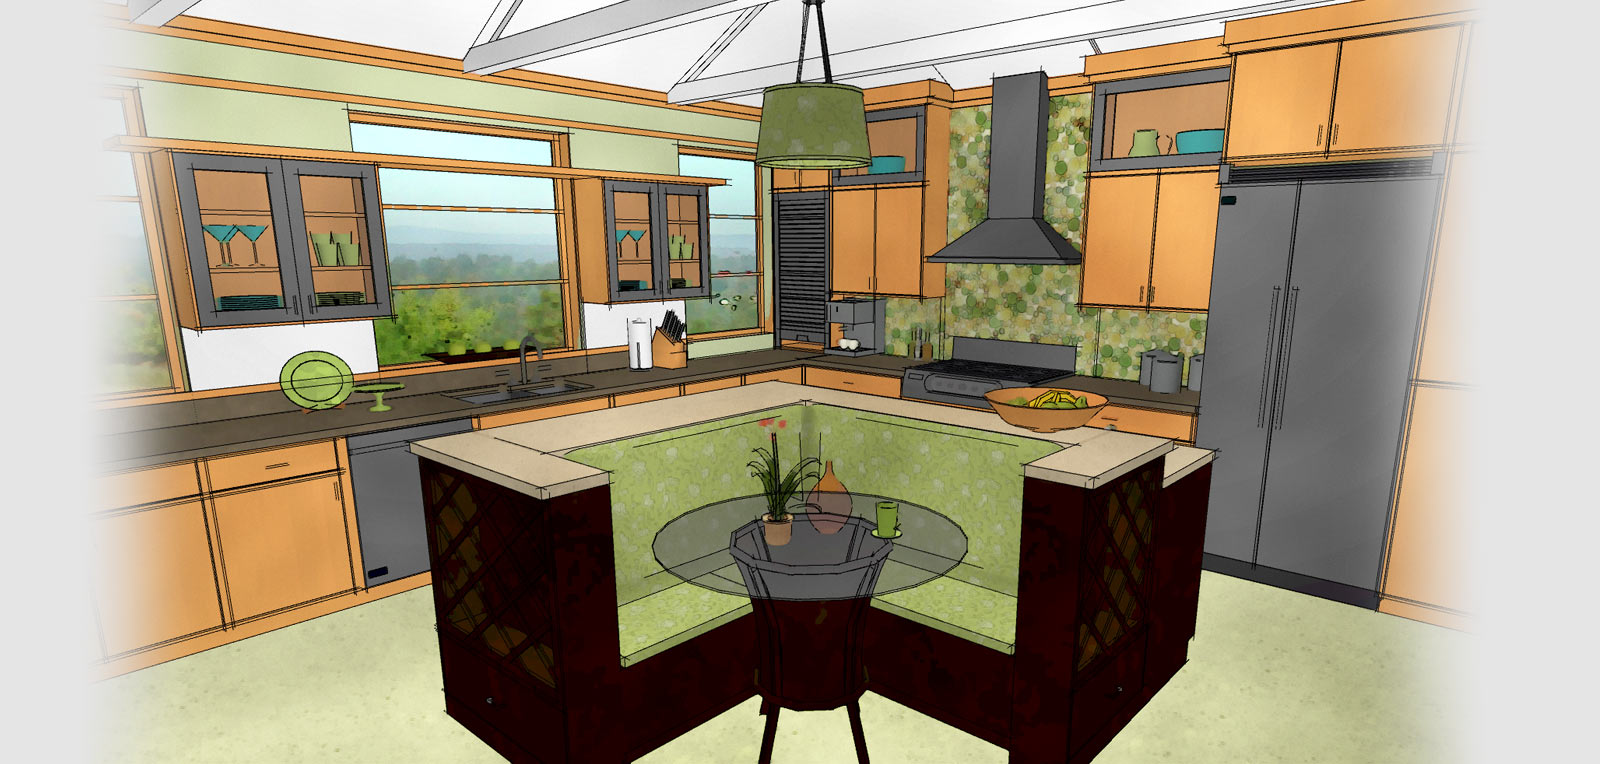 Technical drawing of a kitchen generated by home designer Kitcad kitchen design software